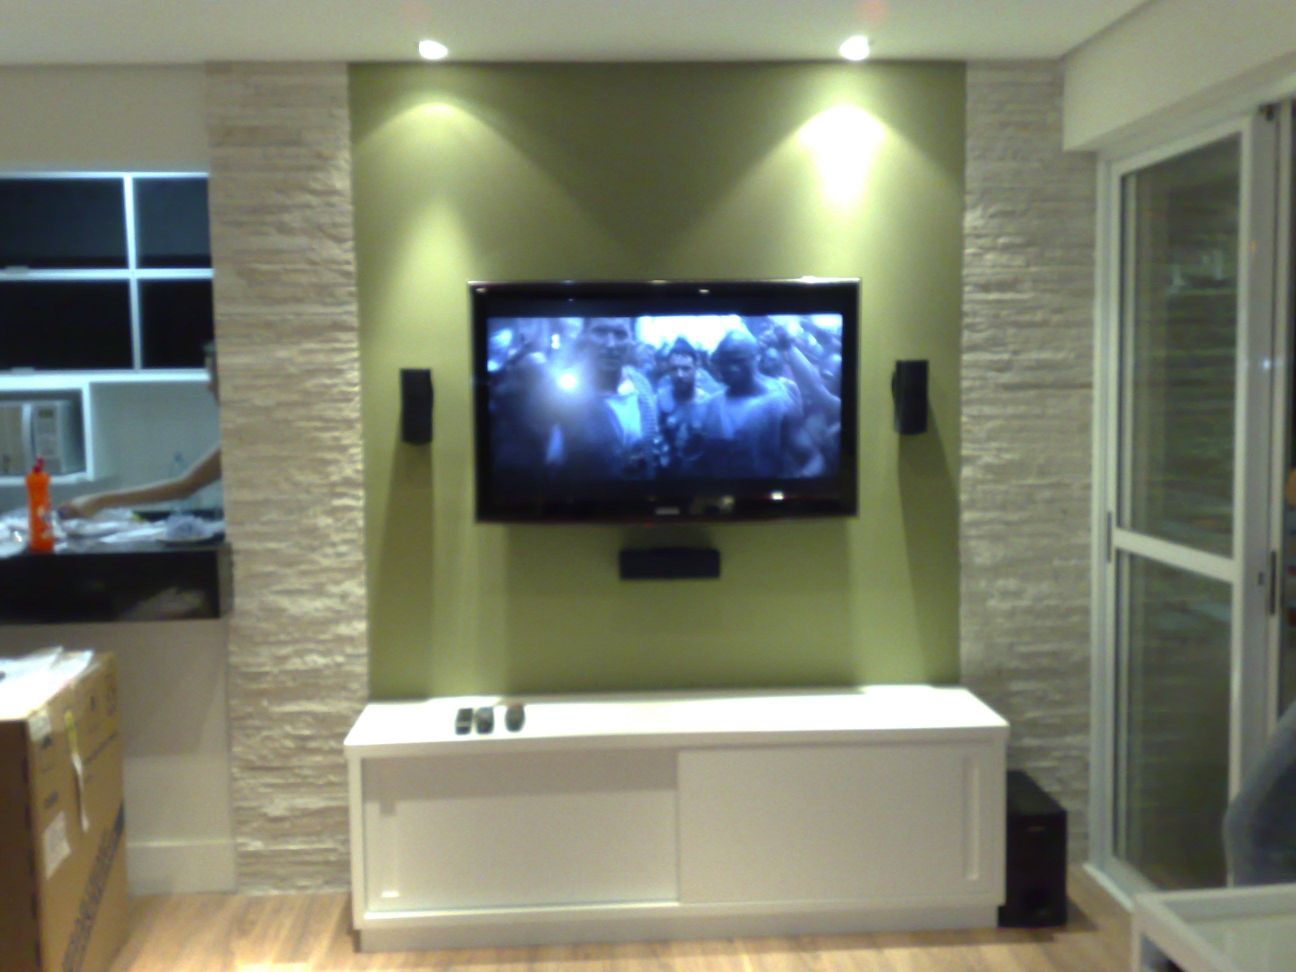 tv instalada com home theater integrado